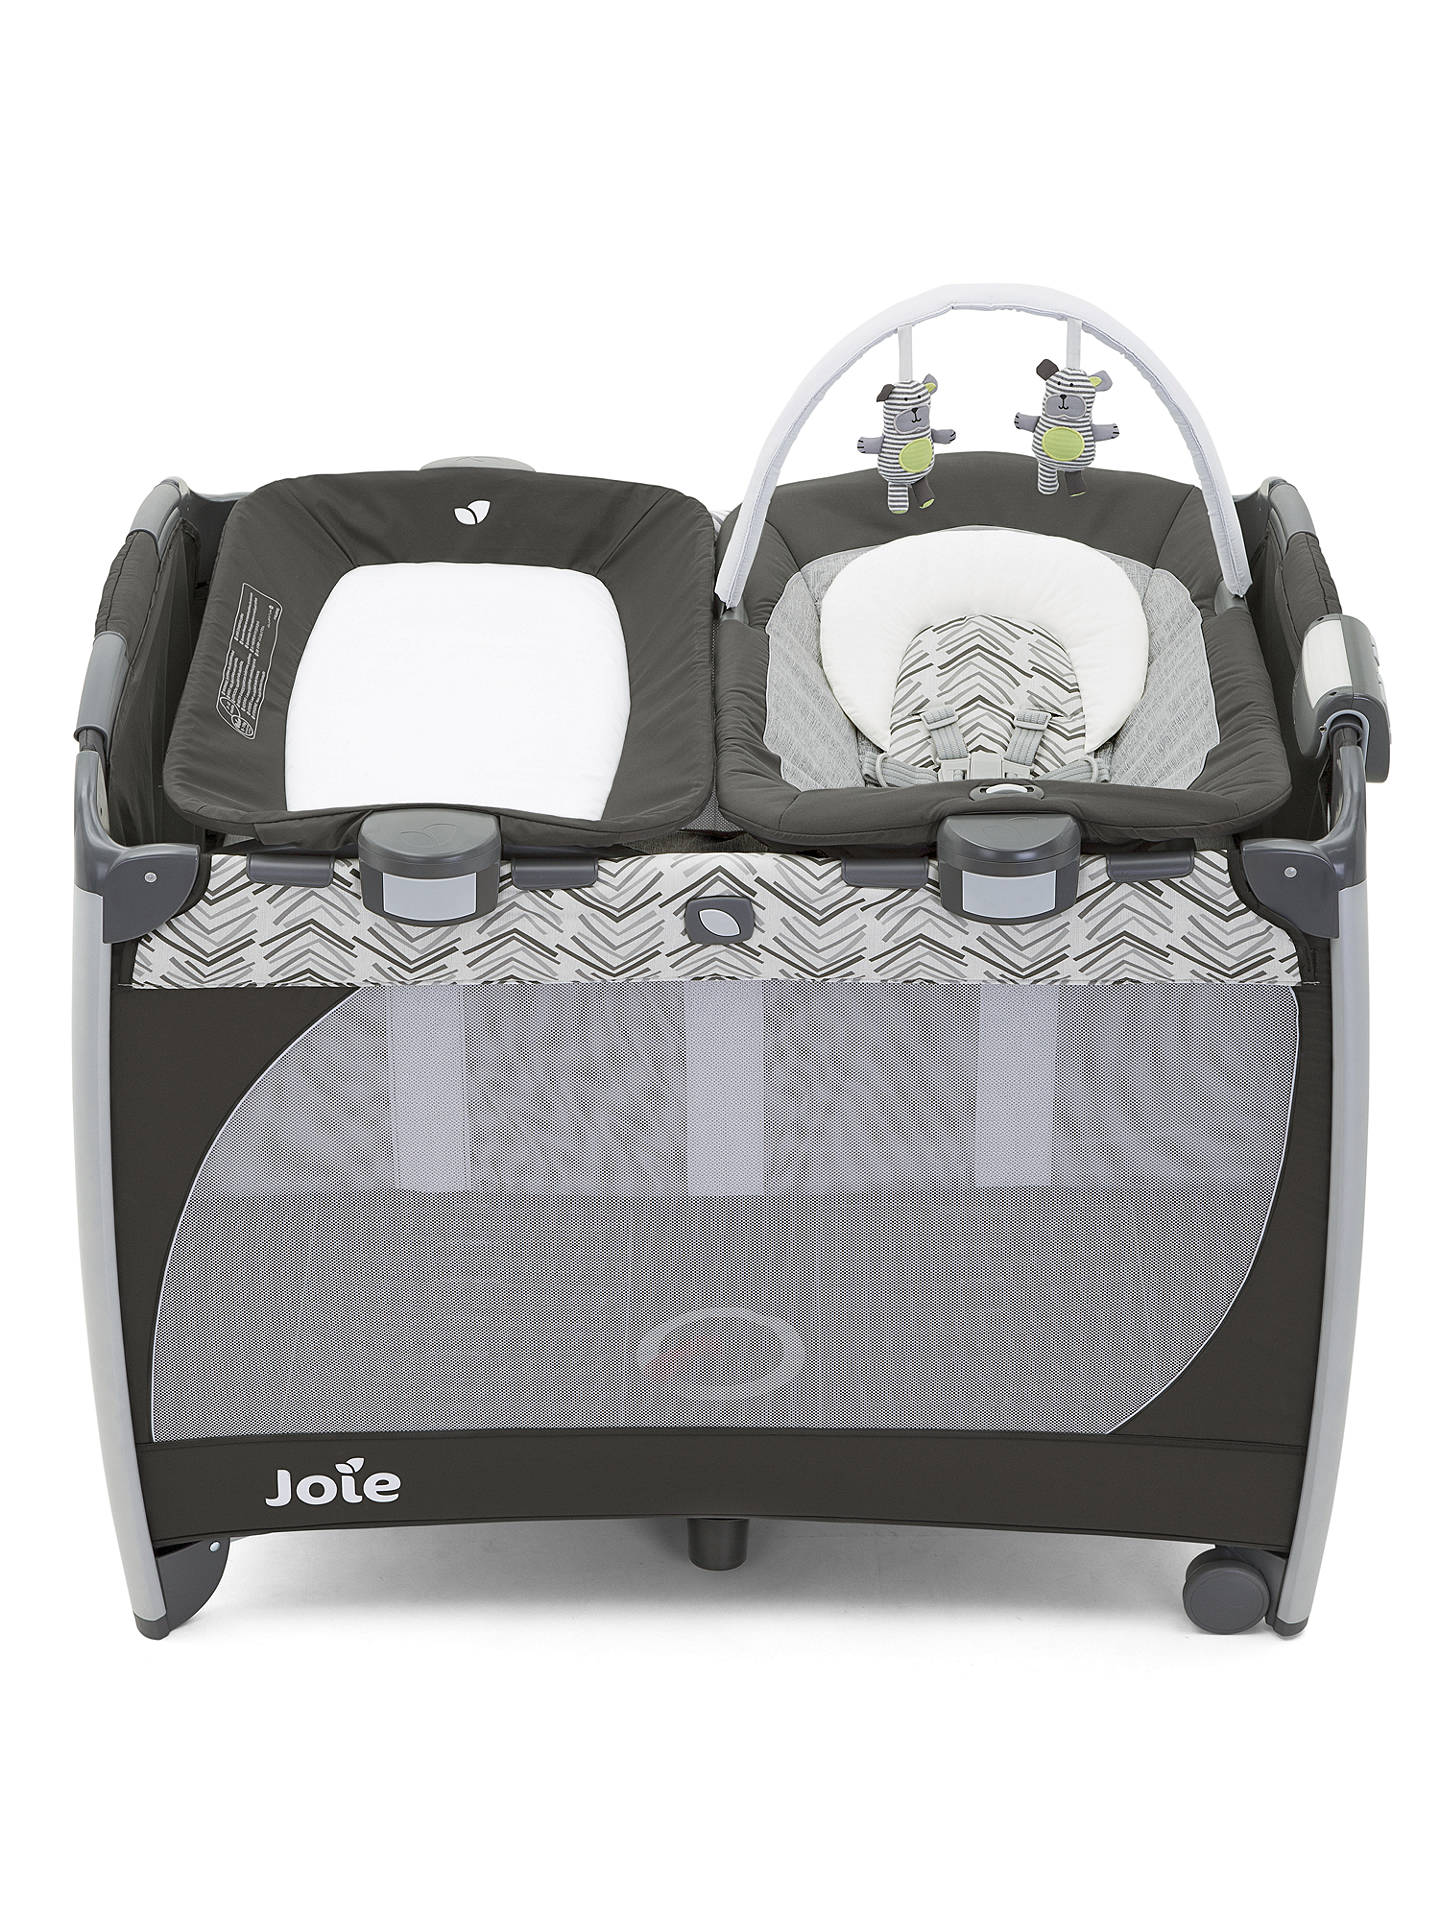 Buy Joie Excursion Change & Bounce Travel Cot, Abstract Arrows Online at johnlewis.com